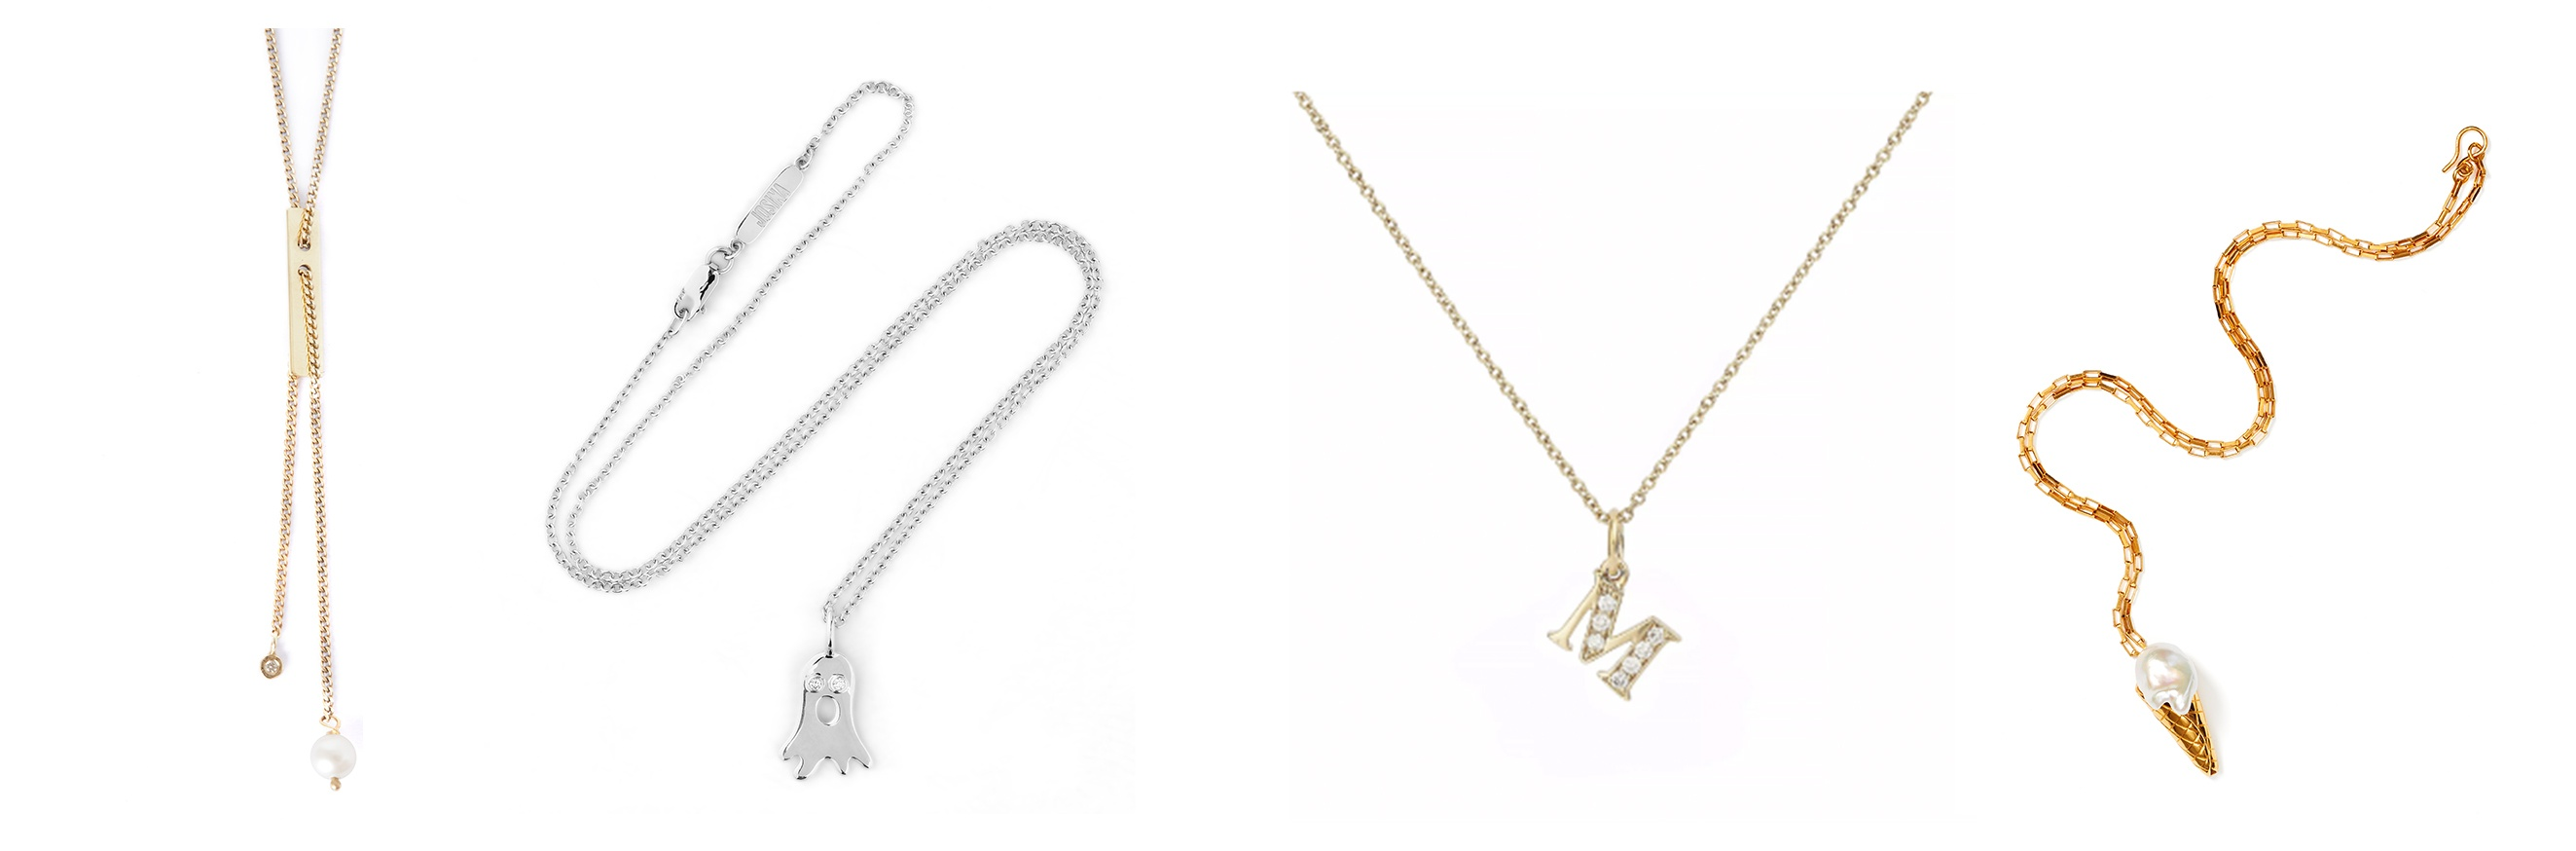 Necklaces with different pendants in gold and silver